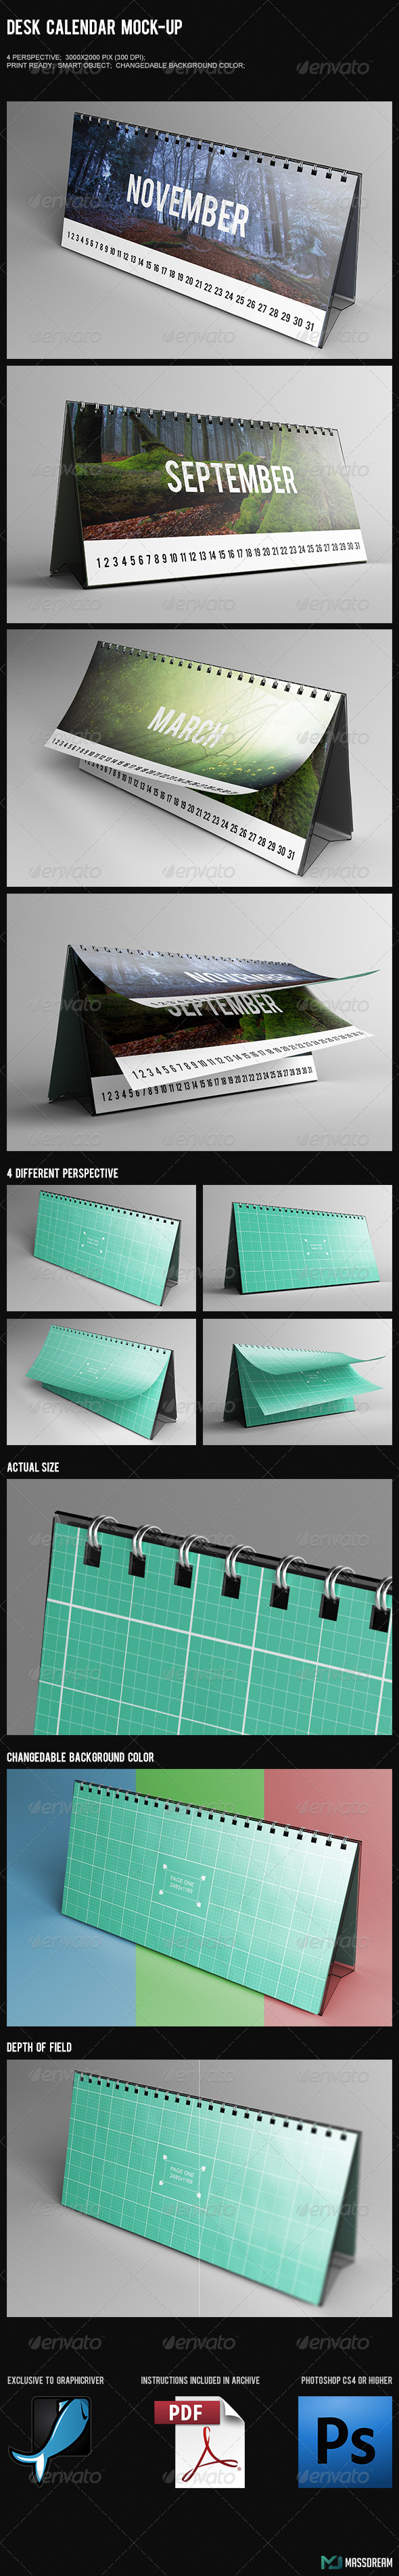 GraphicRiver Desk Calendar Mock-Up 7469052